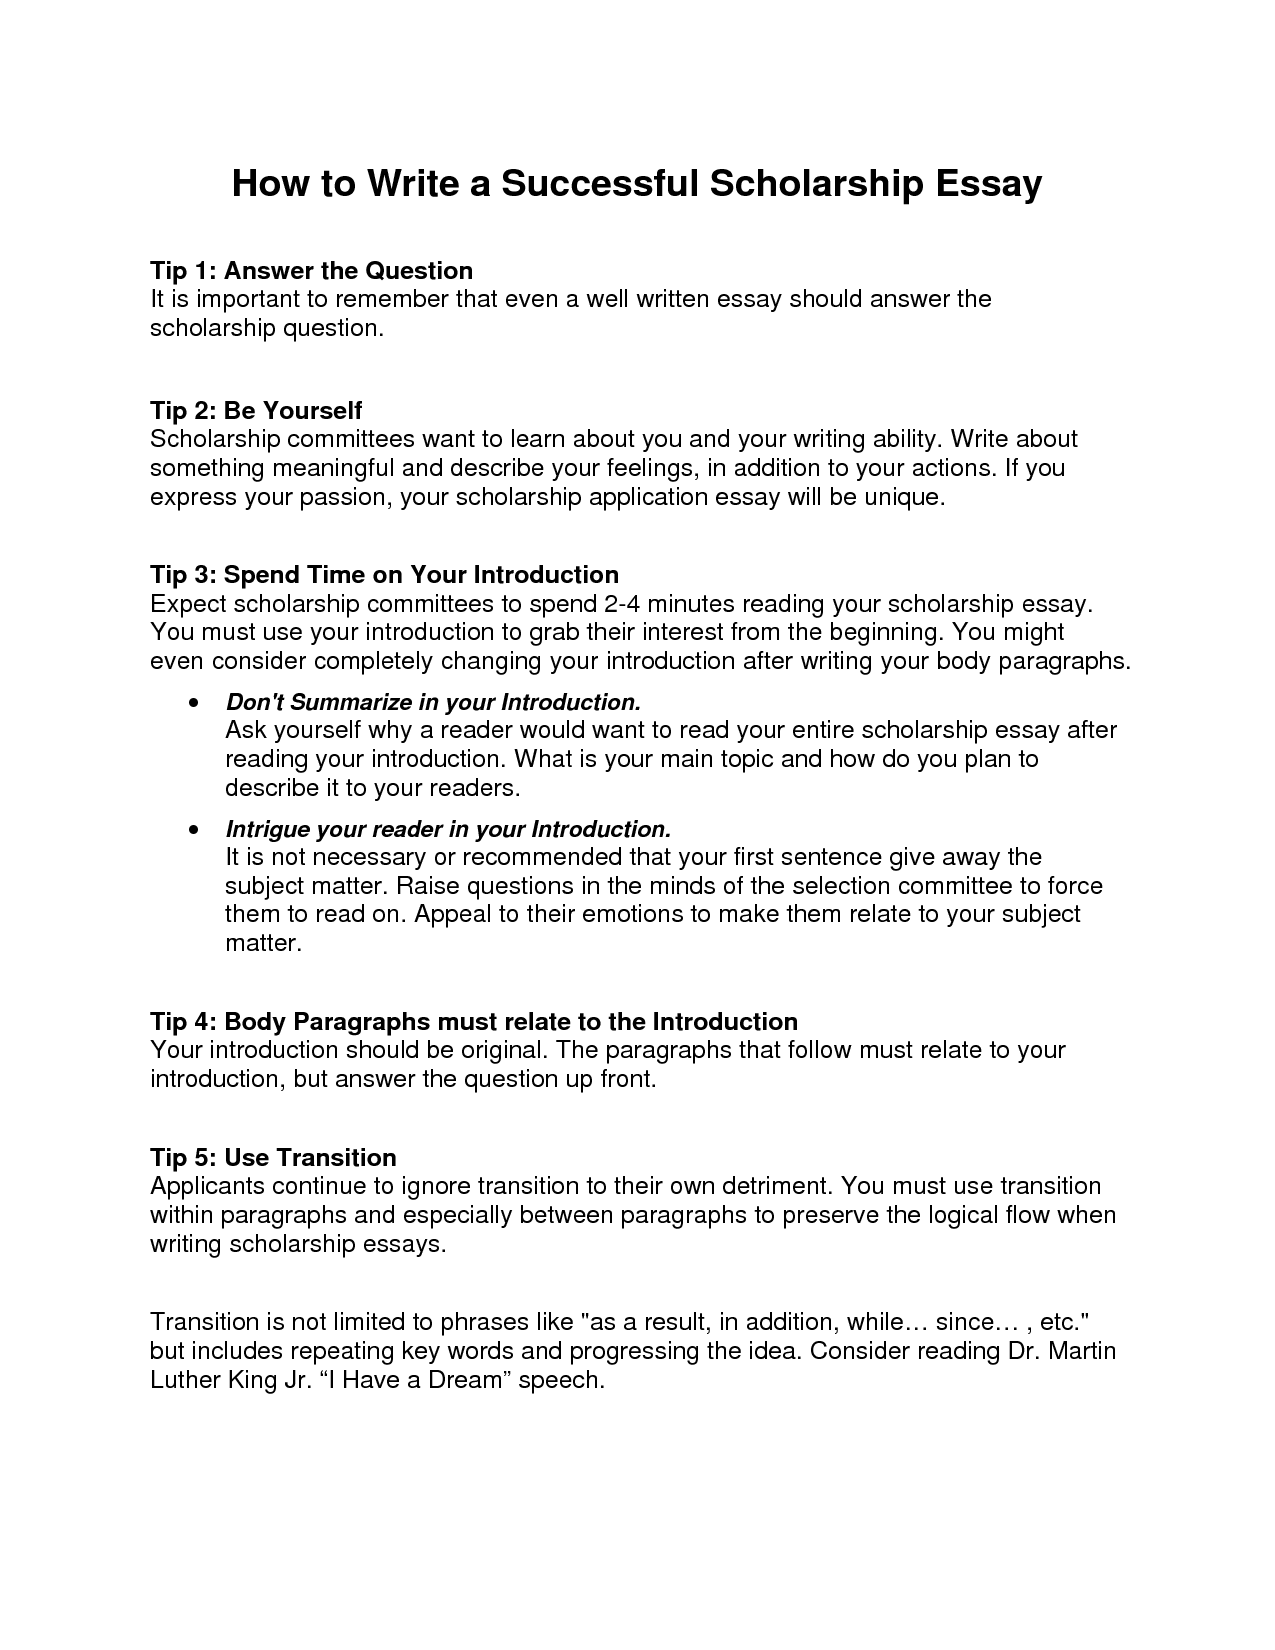 do essay for you online writing service write an essay on the ia of my dreams